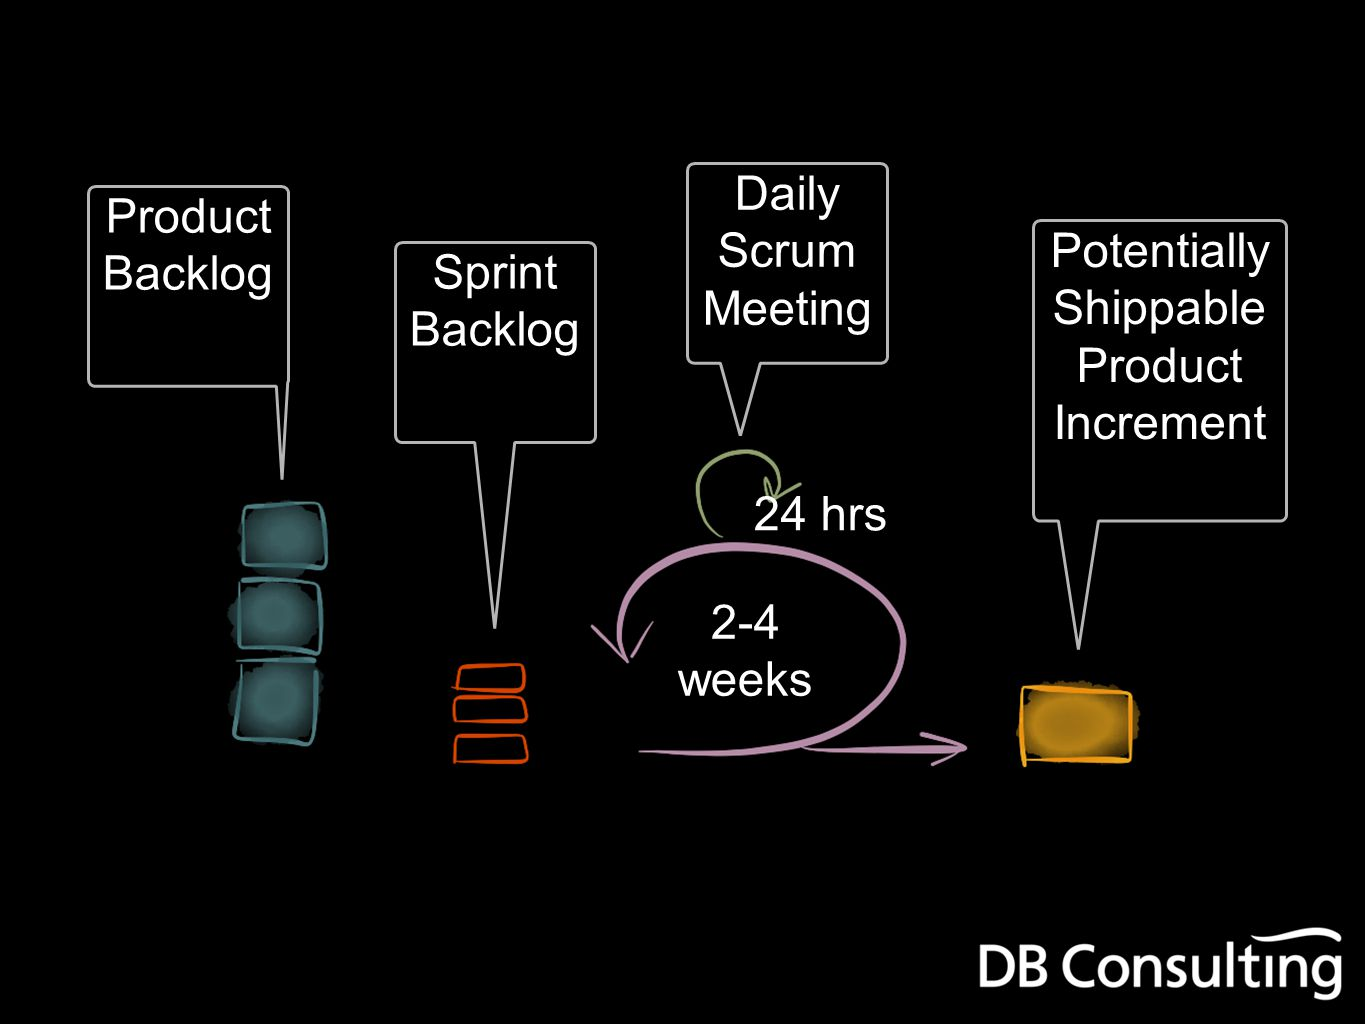 Product Backlog Sprint Backlog Daily Scrum Meeting Potentially Shippable Product Increment 24 hrs 2-4 weeks